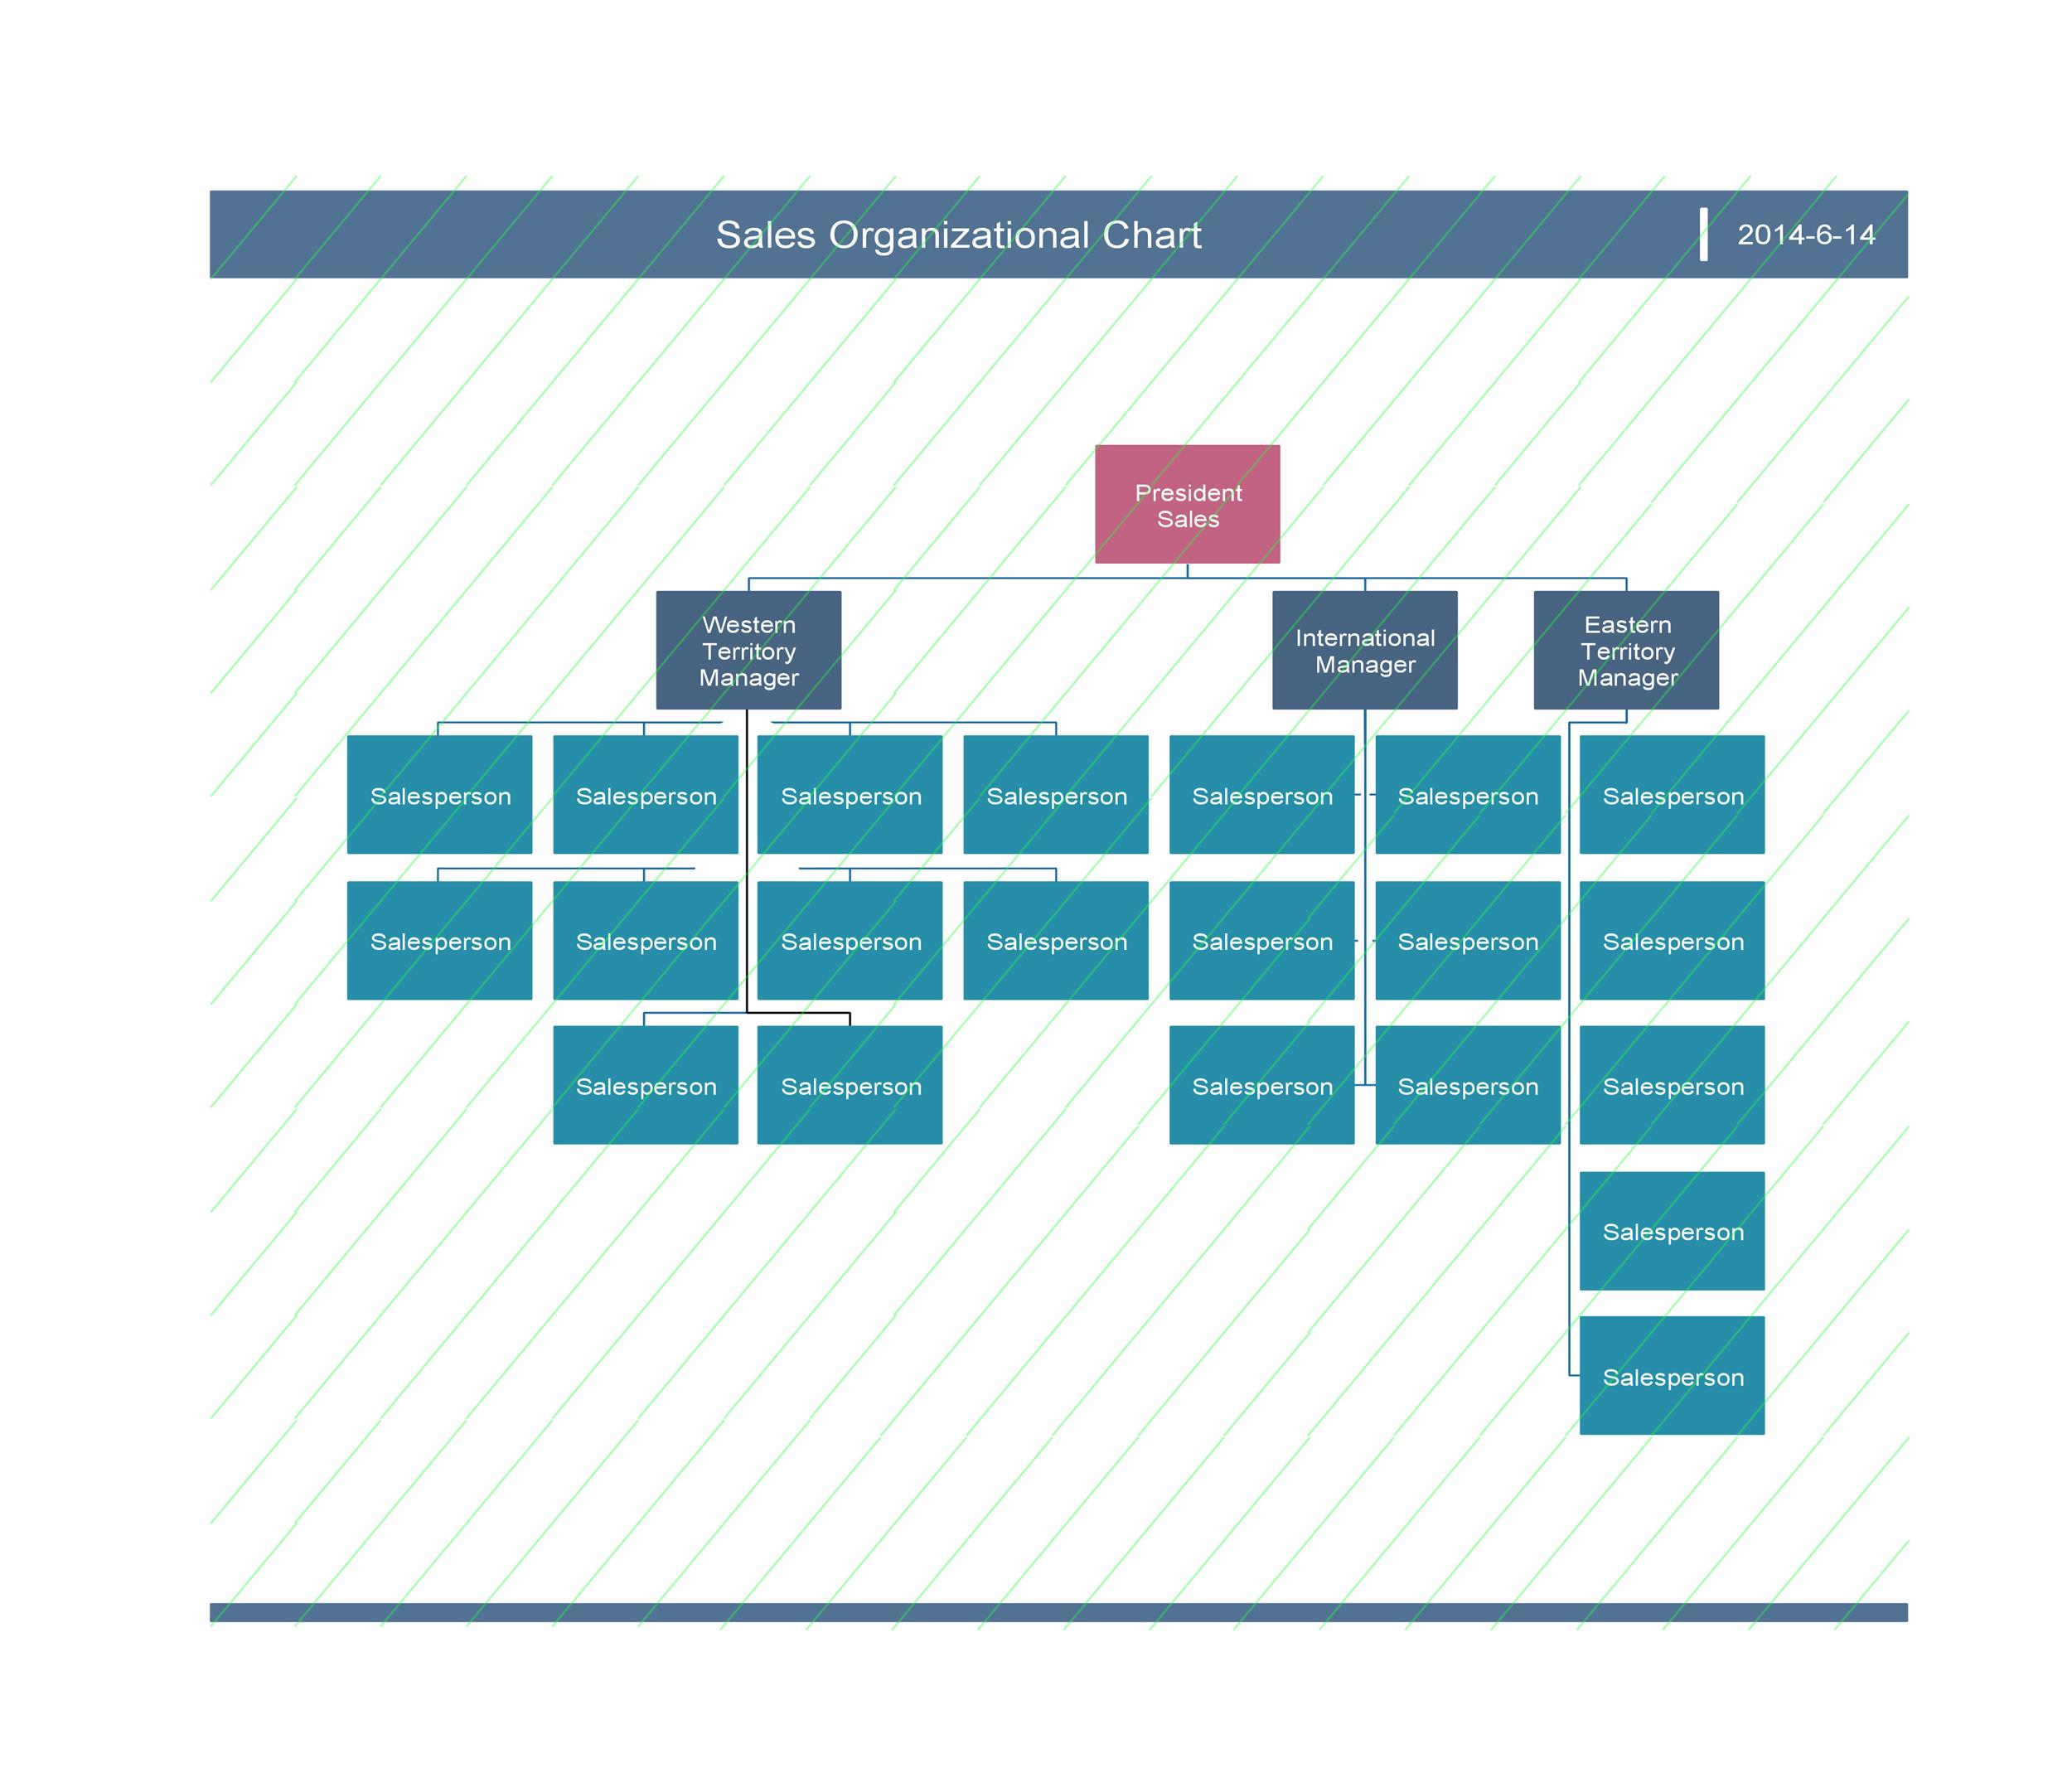 40 organizational chart templates (word, excel, powerpoint).